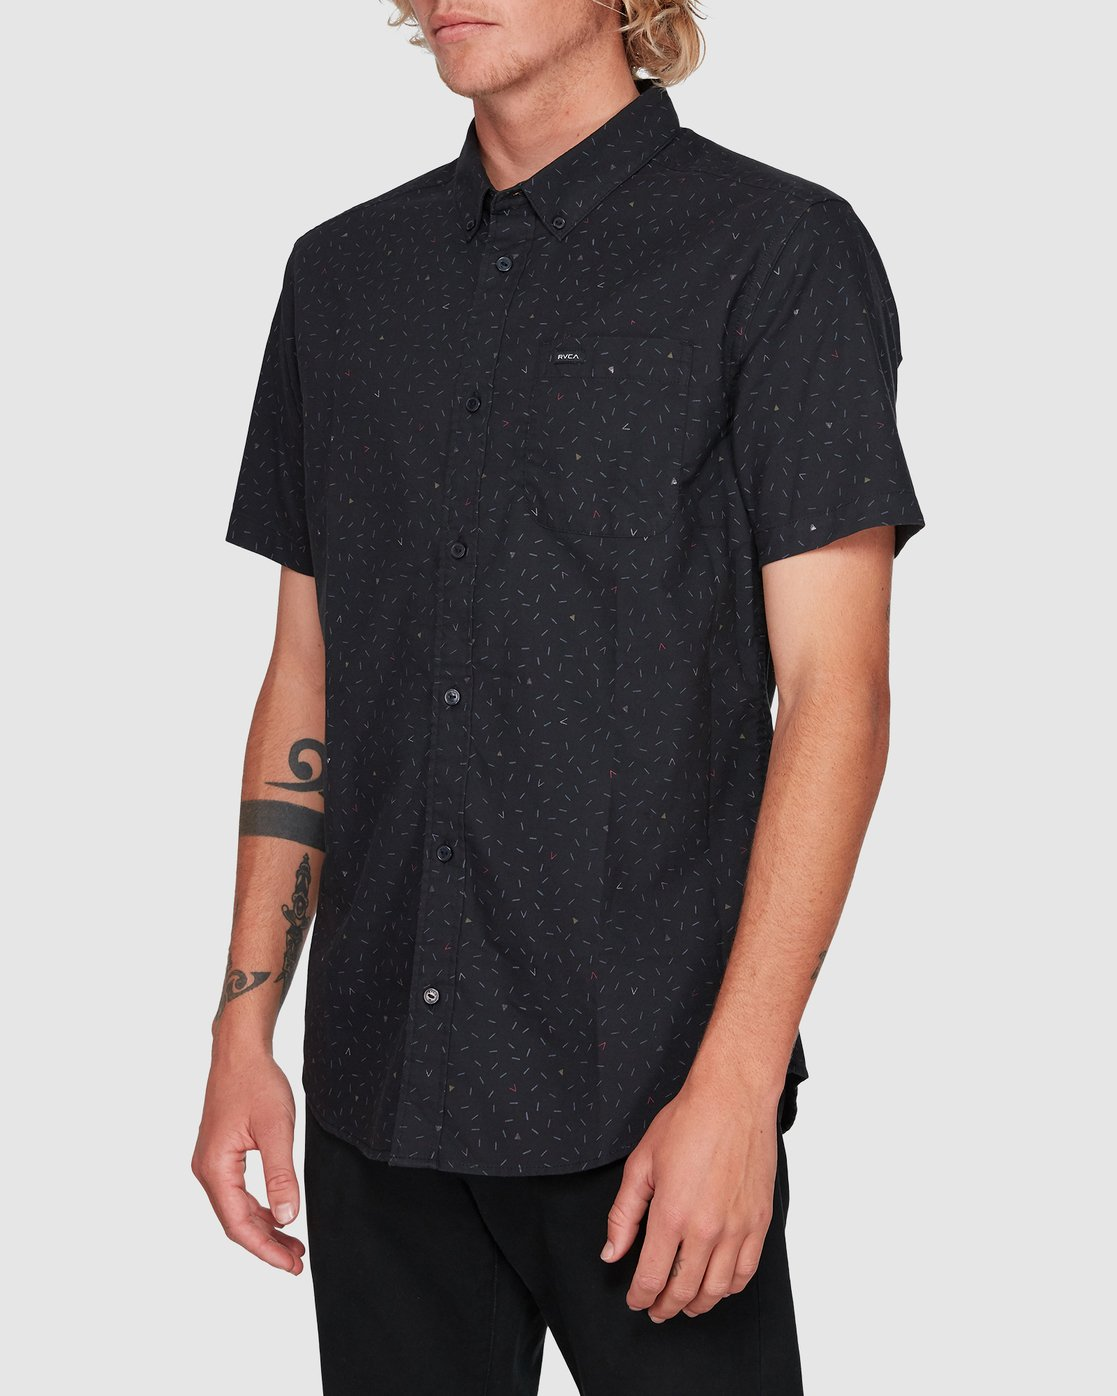 1 Thatll Do Print Short Sleeve Top Black R393188 RVCA